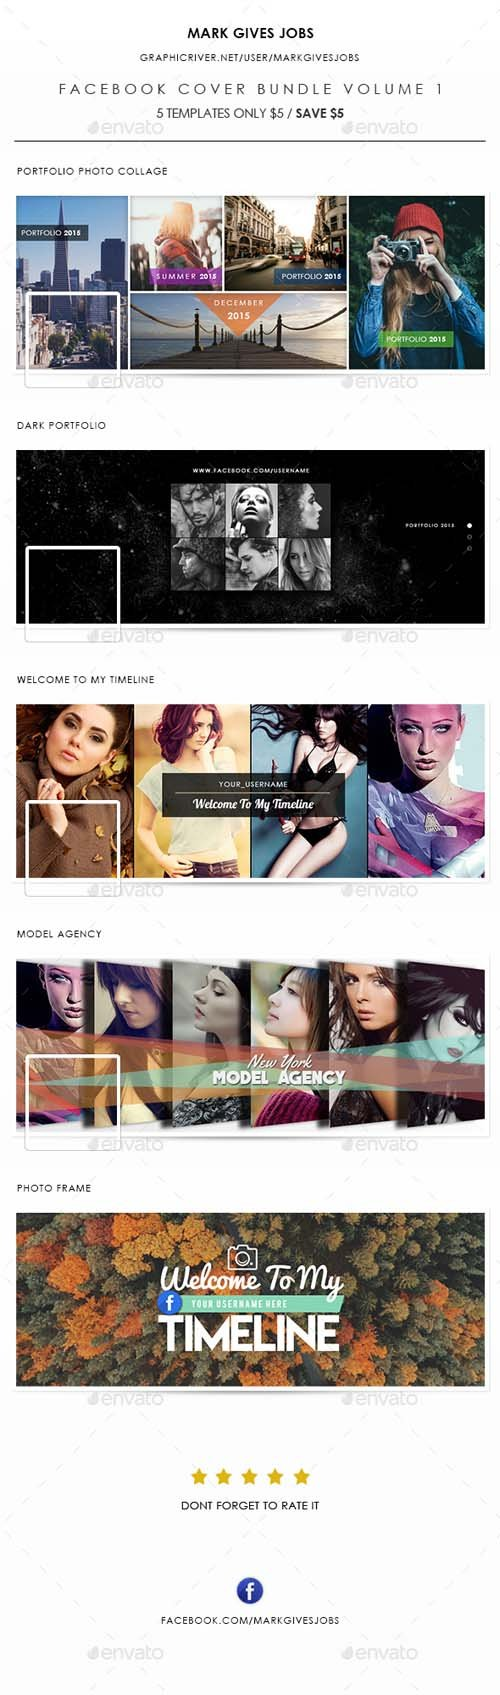 Facebook Cover Bundle Volume 1 14312232